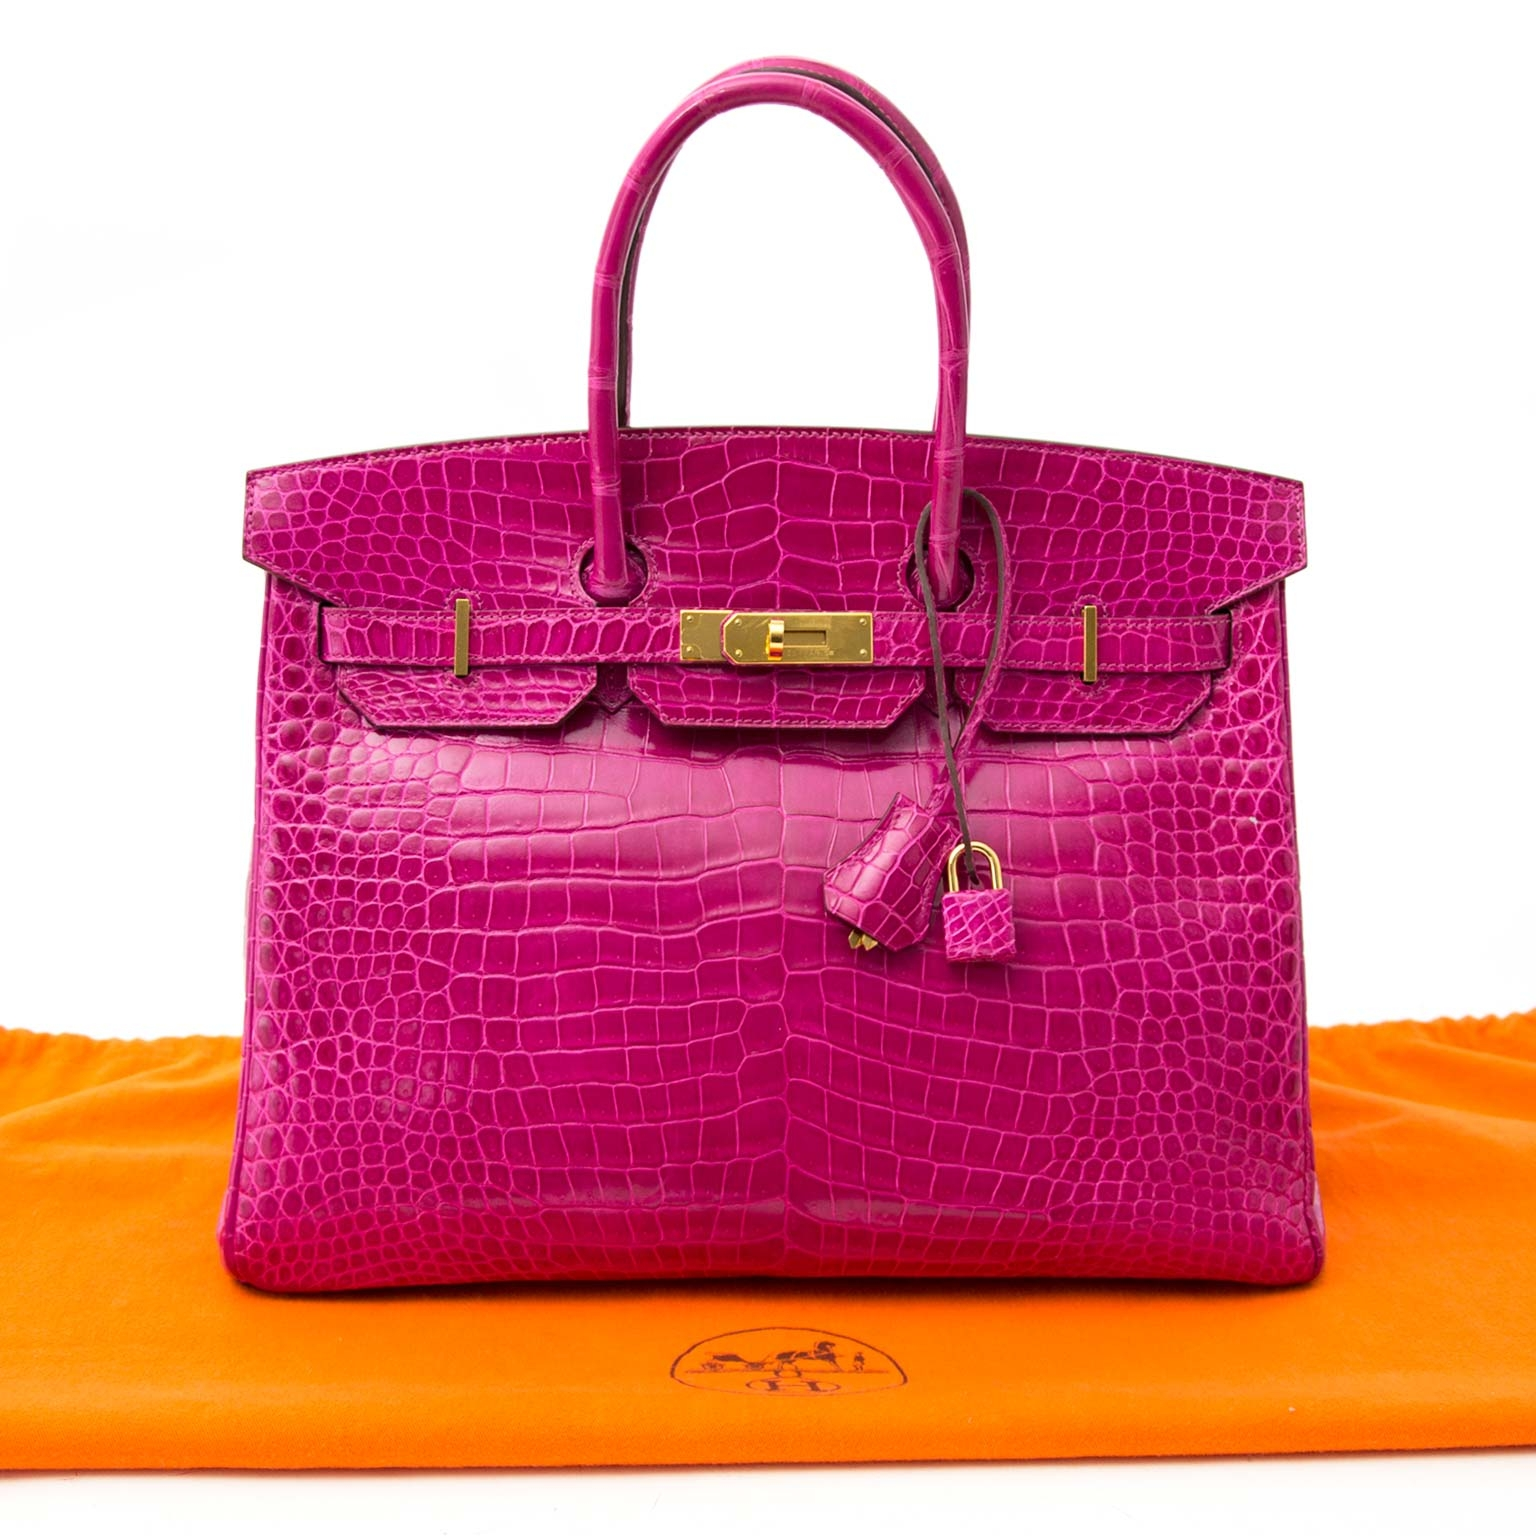 2b0a327746 ... buy safe and secure online at labellov.com Hermès Birkin 35 rose  sheherazade porosus ghw